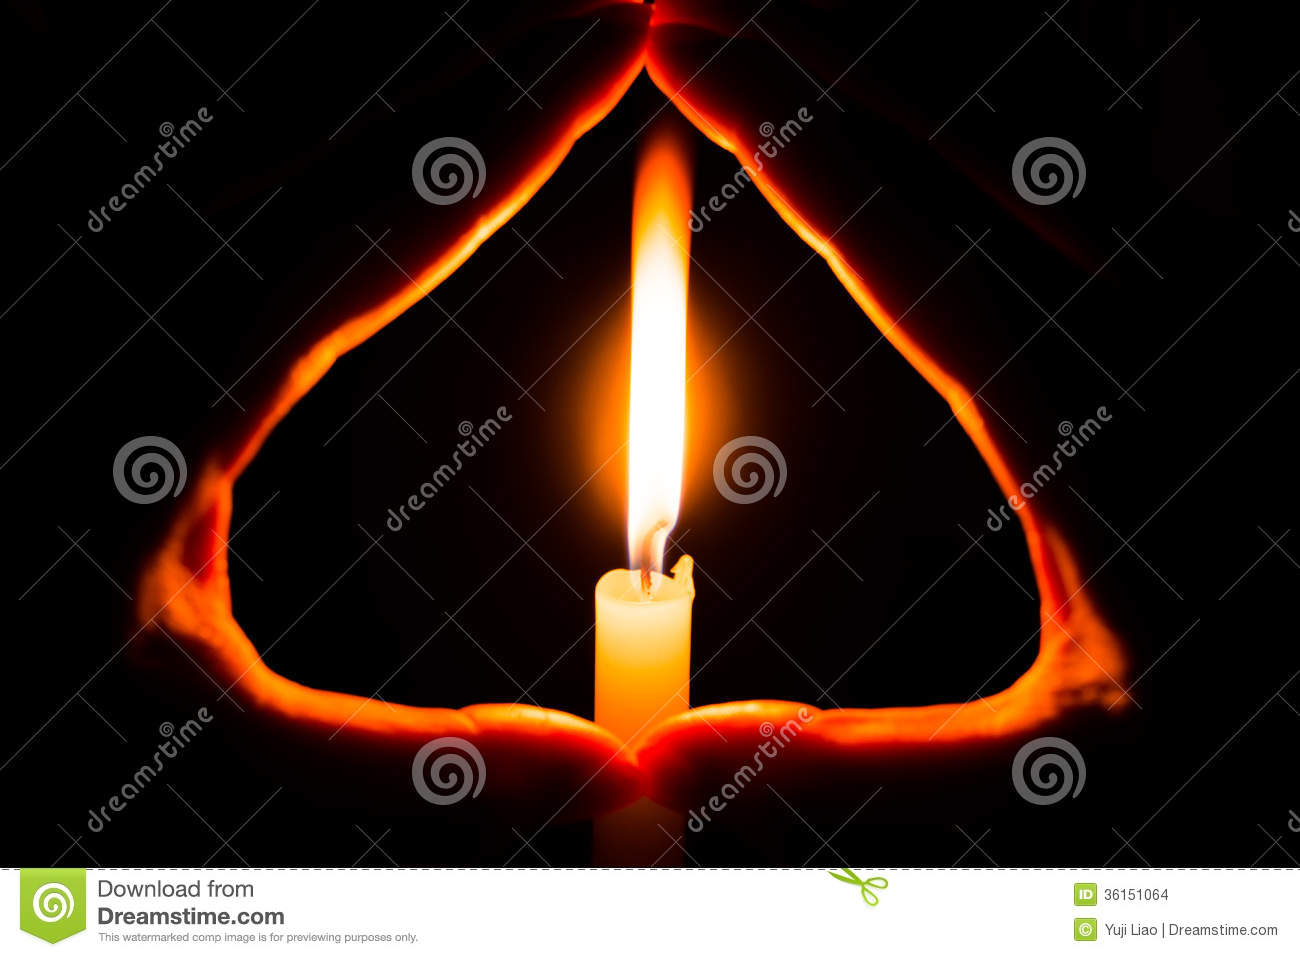 Hands Holding A Burning Candle In Dark Stock Illustration ... for Holding Candle In The Dark  539wja